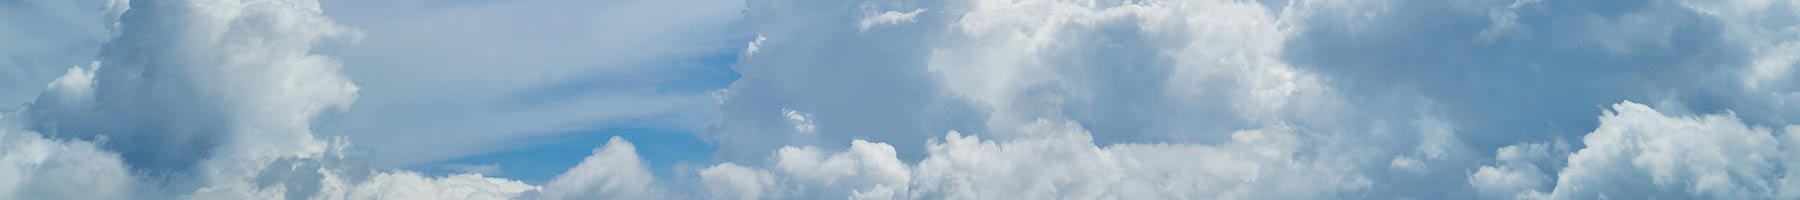 blue sky with white puffy clouds background texture